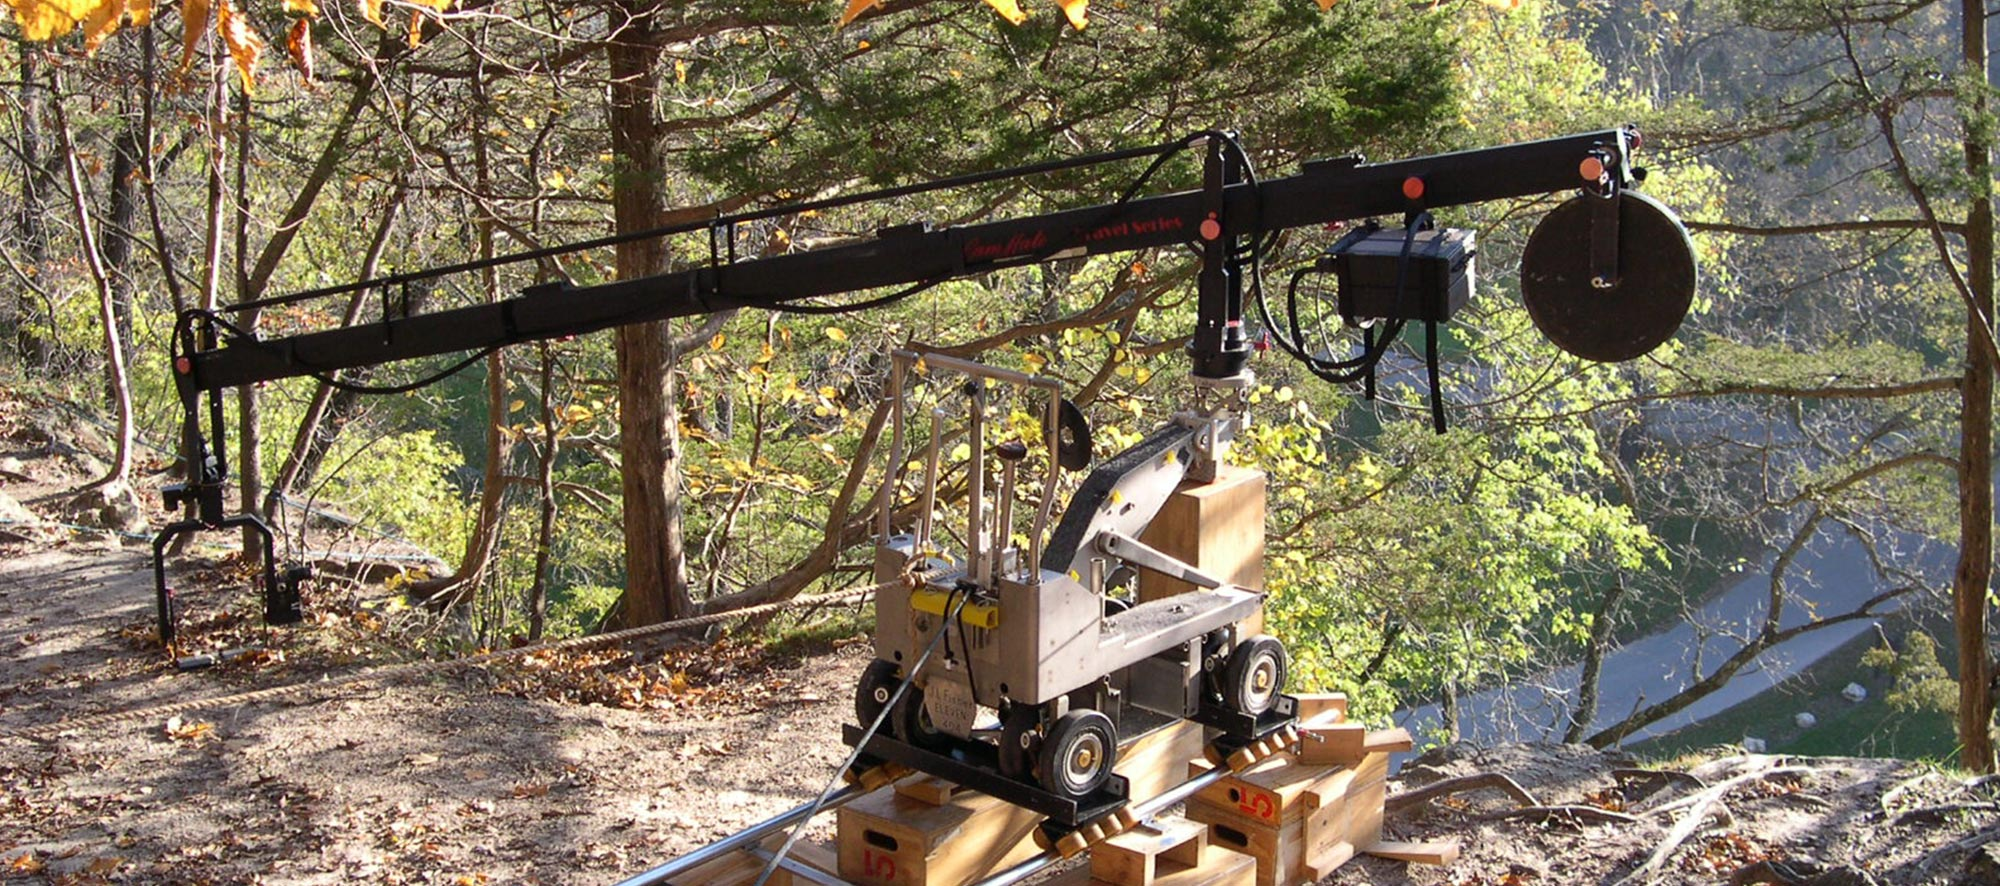 Rails and camera dolly on location in park